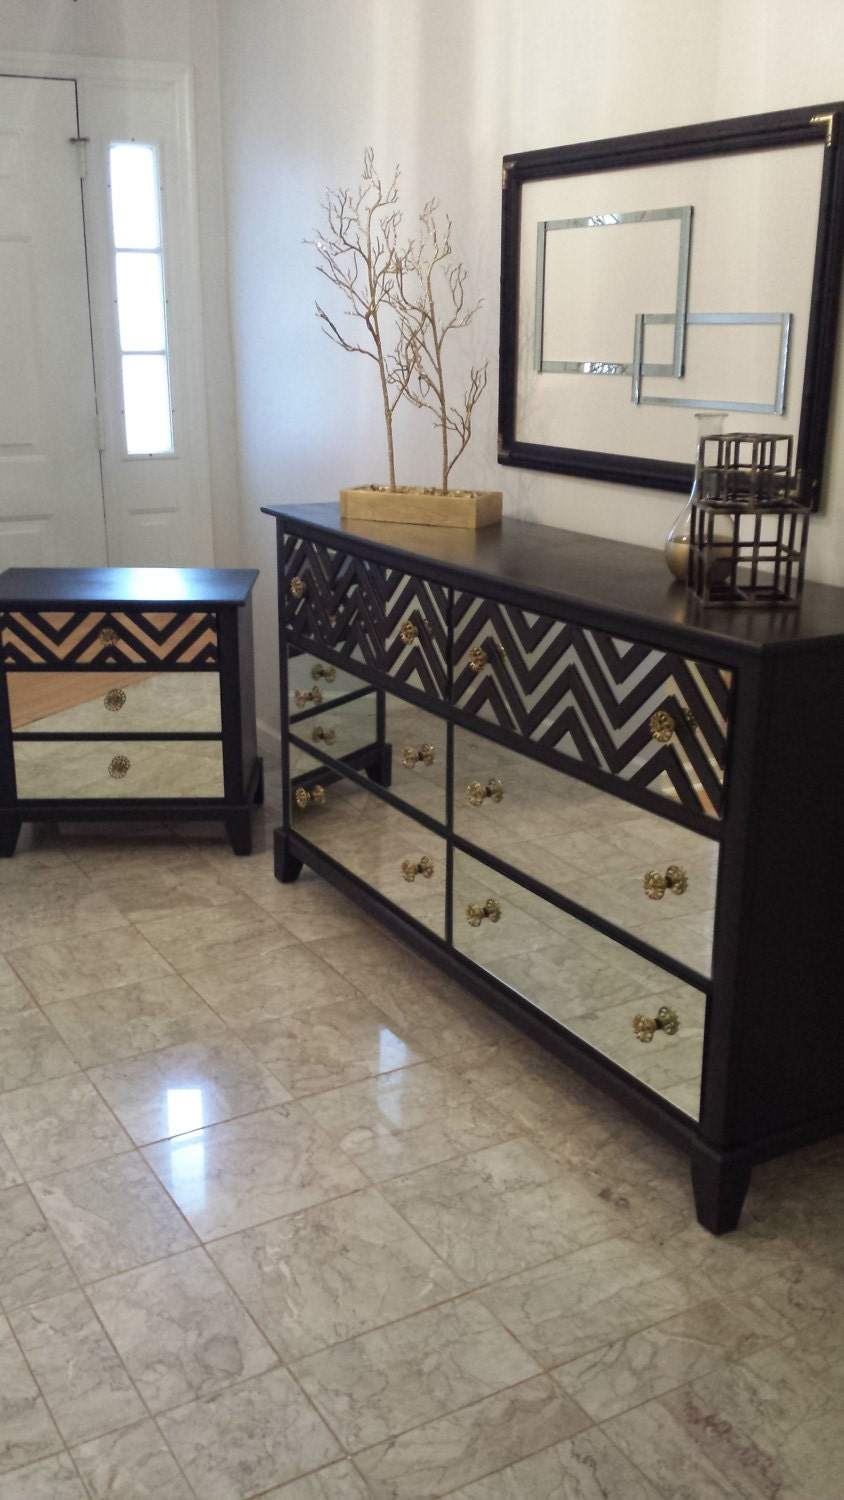 mirrored bedroom dresser set black with chevron by mirroredjewels